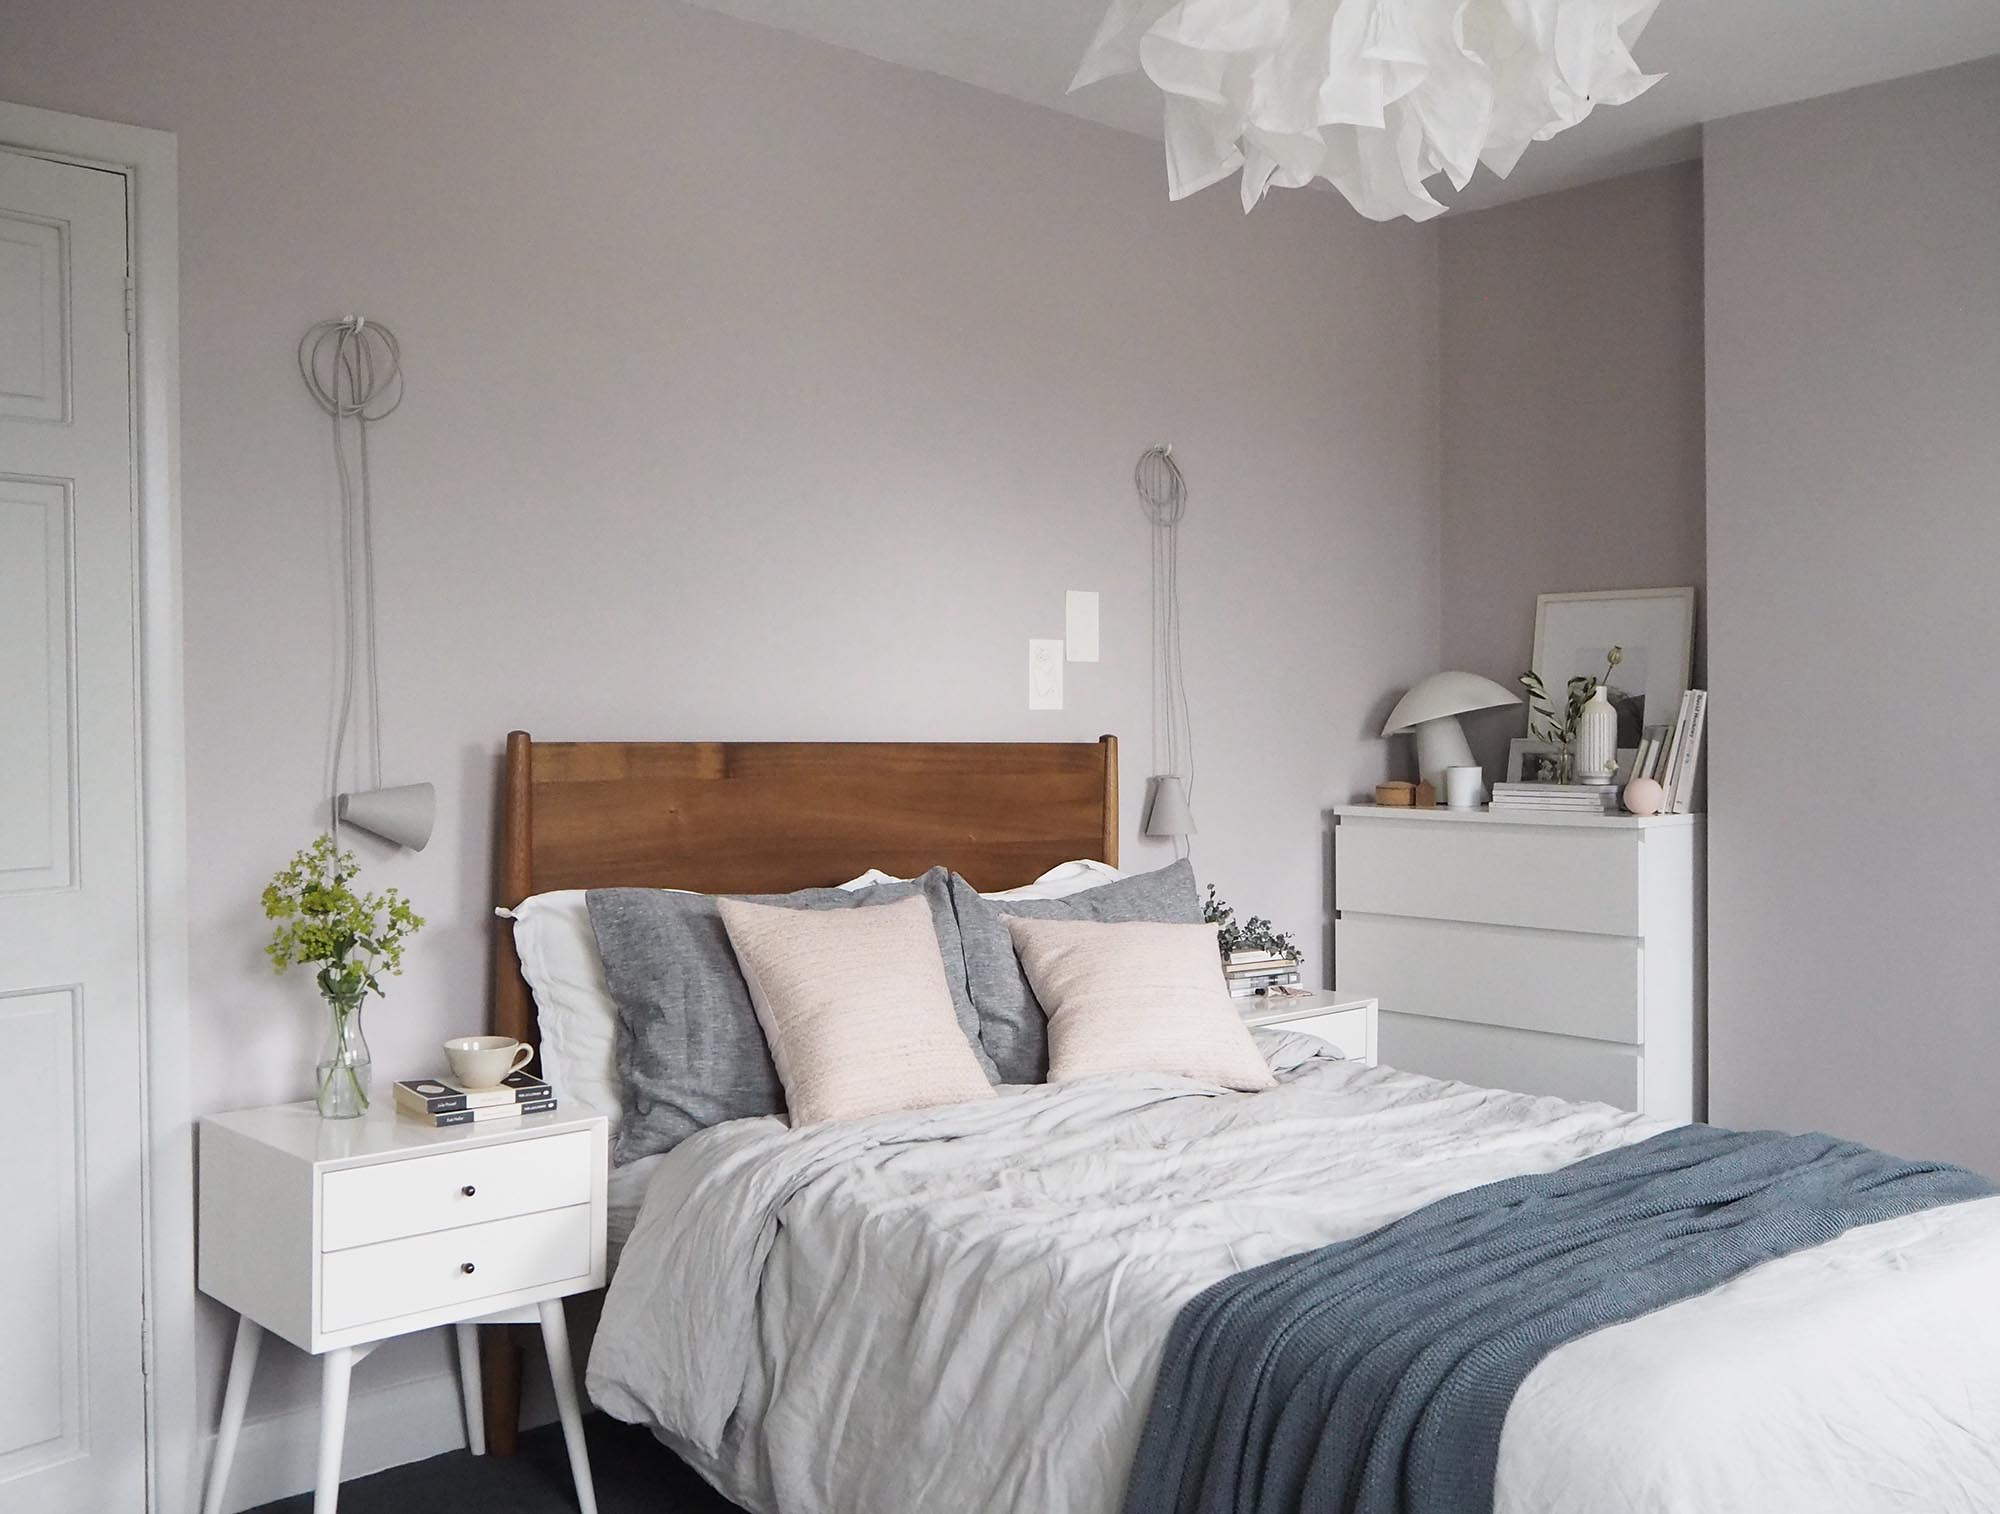 soft blush pink bedroom reveal before + after - farrow & ball peignoir - west elm mid-century